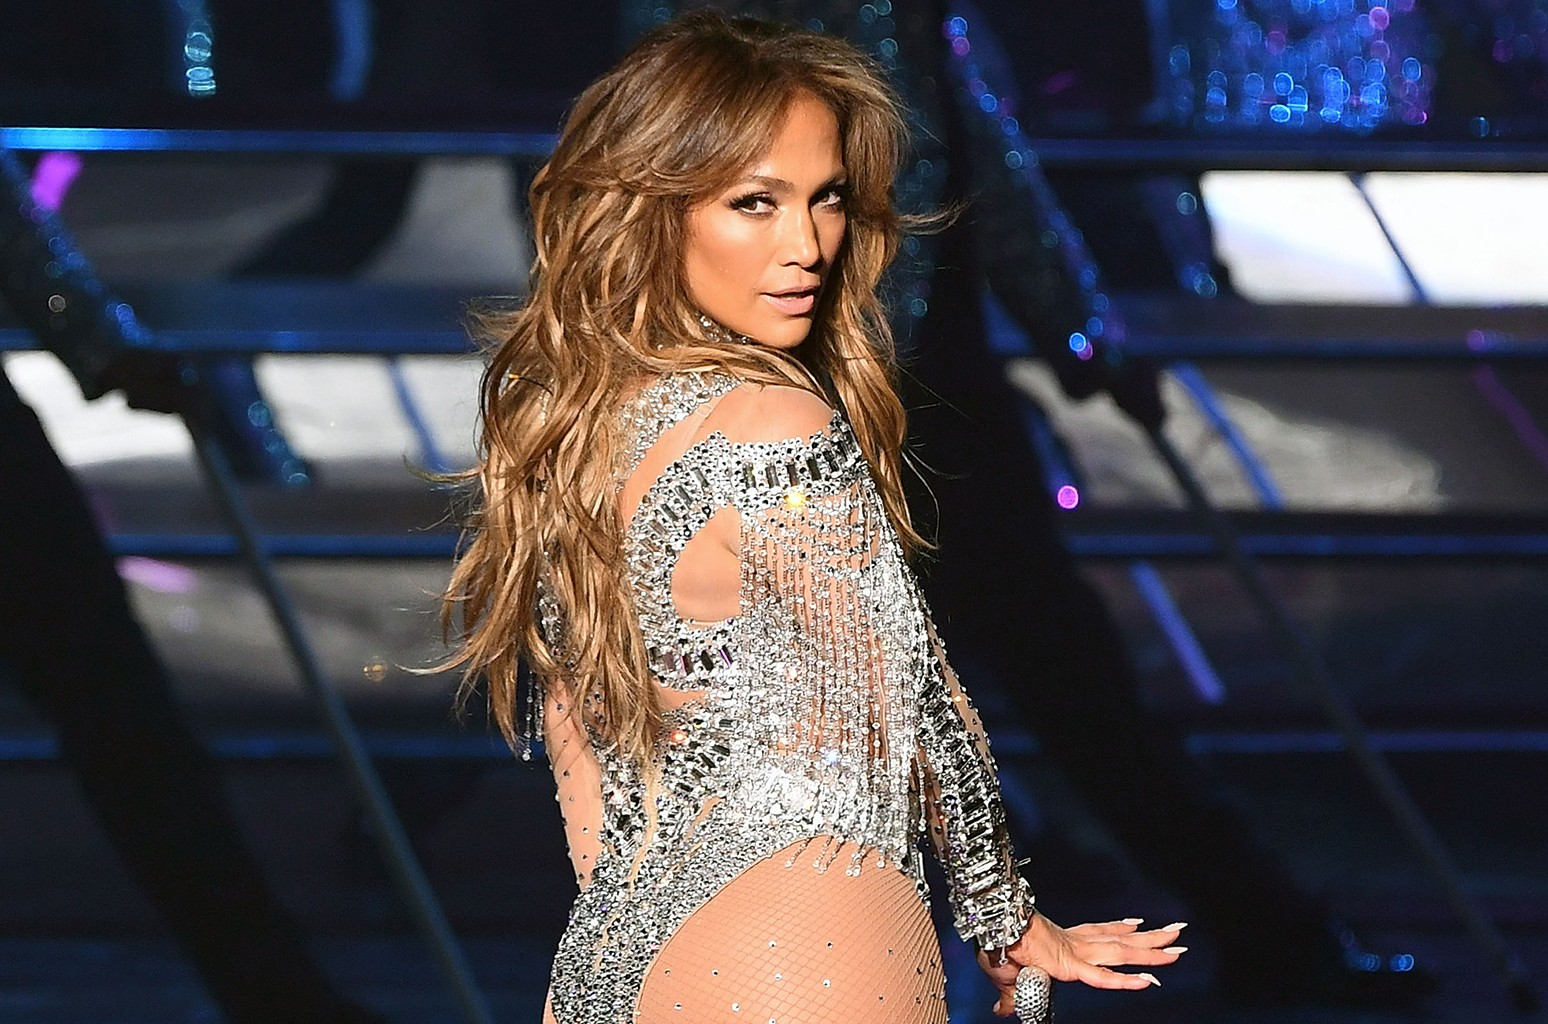 Jennifer Lopez performs in Las Vegas